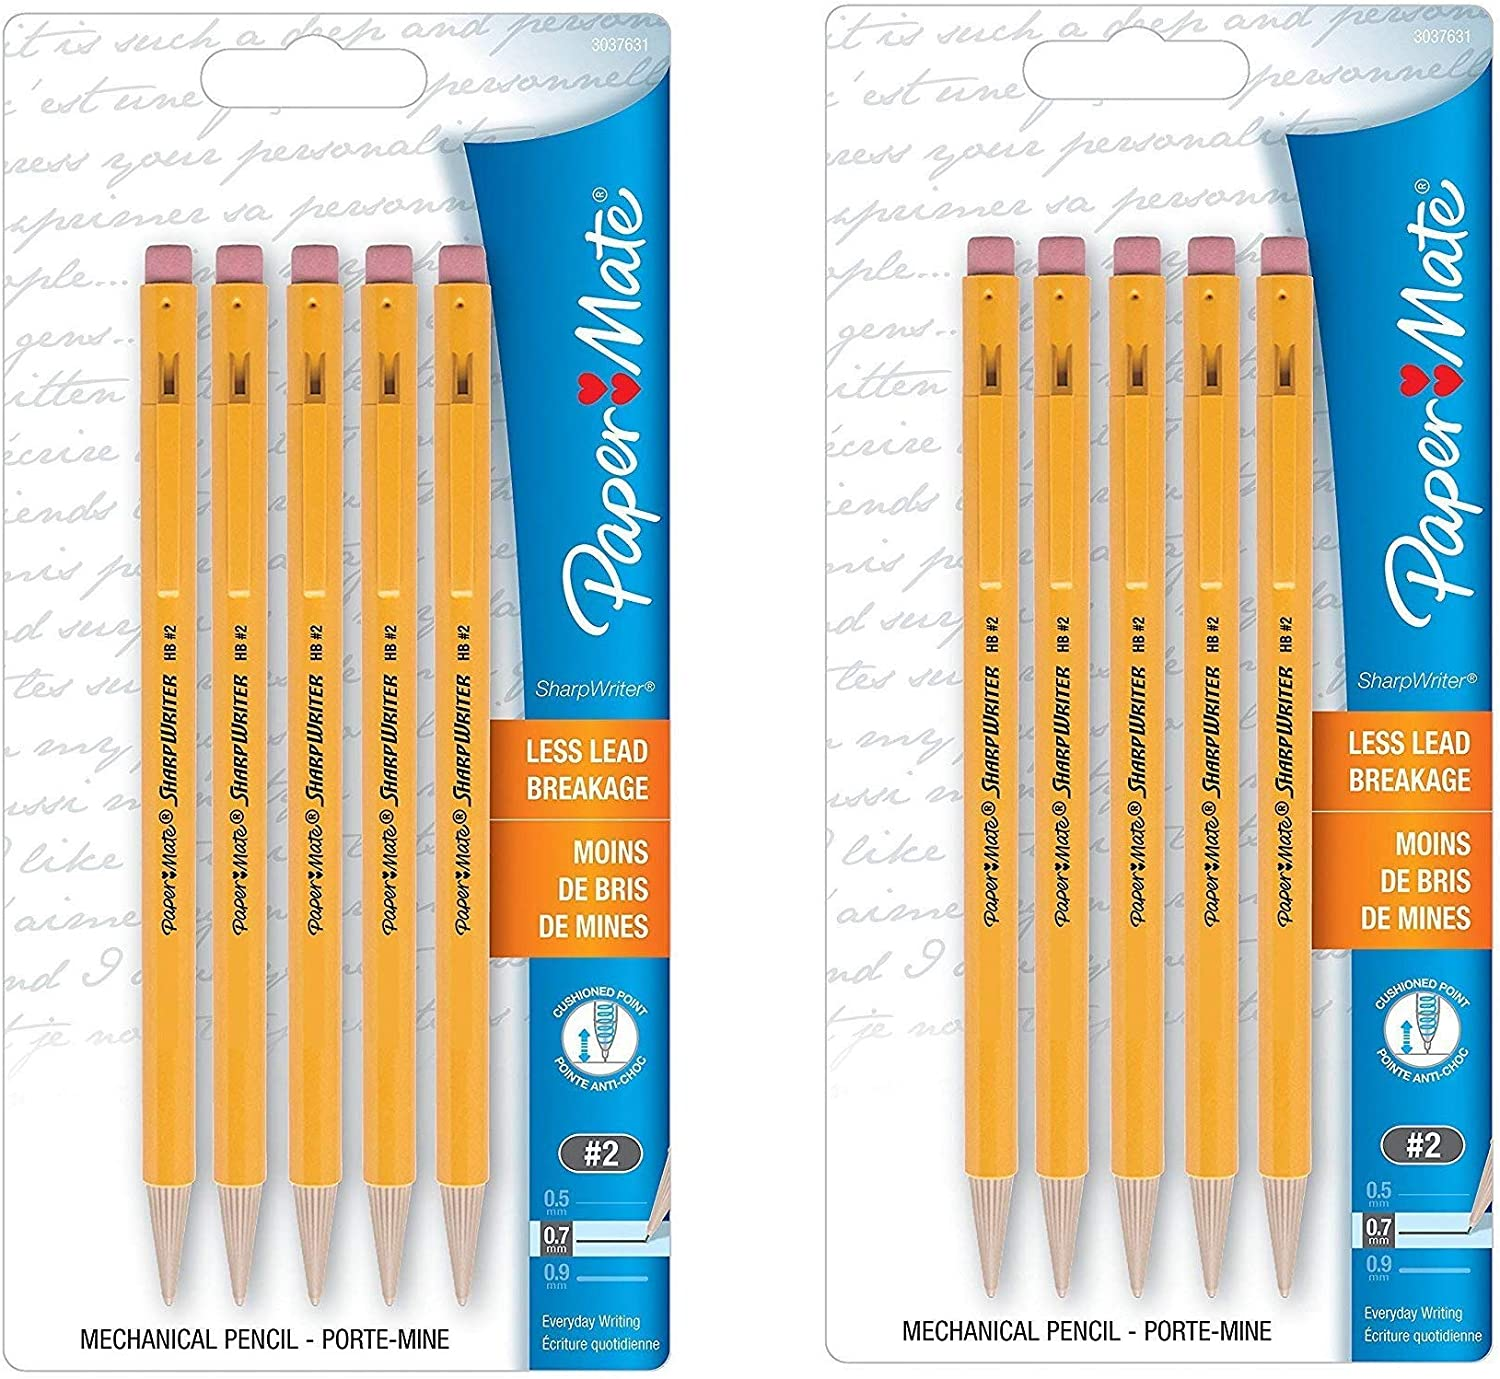 Lot of 60 NEW PaperMate SharpWriter Mechanical Pencil #2 0.7mm